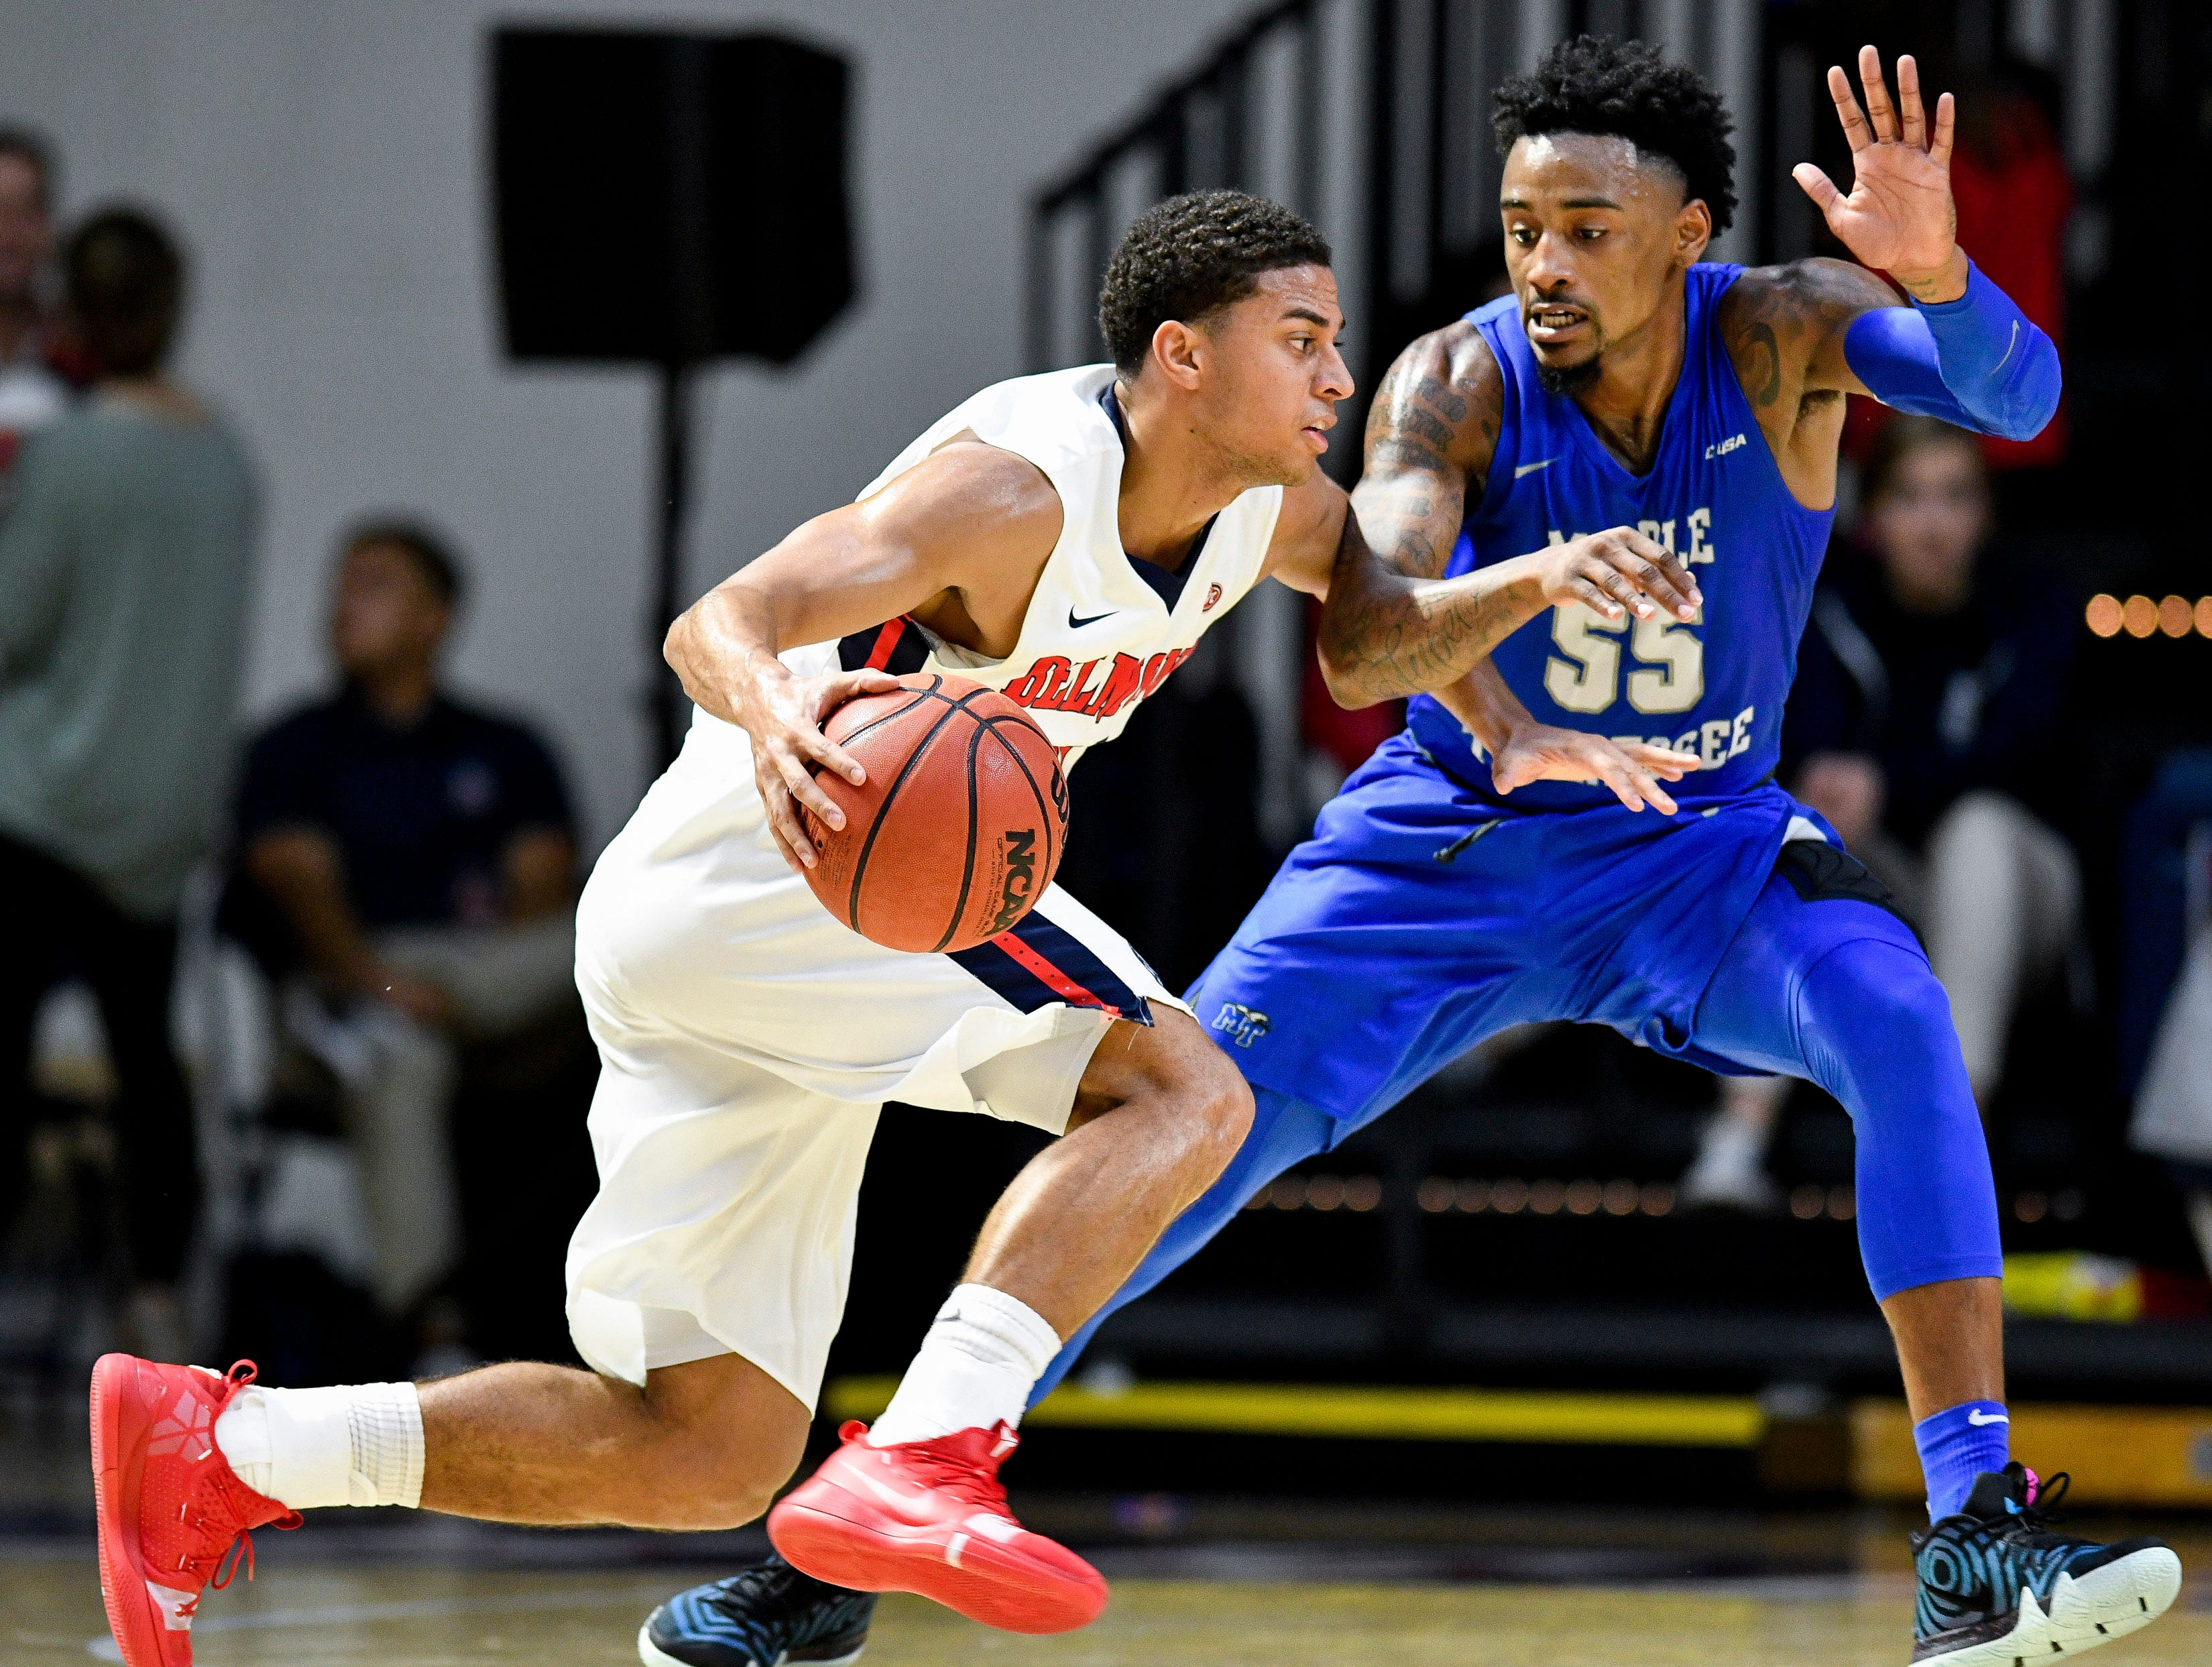 Belmont guard Kevin McClain (11) advances into MTSU guard Antonio Green (55) during the first half at the Curb Event Center Arena in Nashville, Tenn., Monday, Nov. 12, 2018.